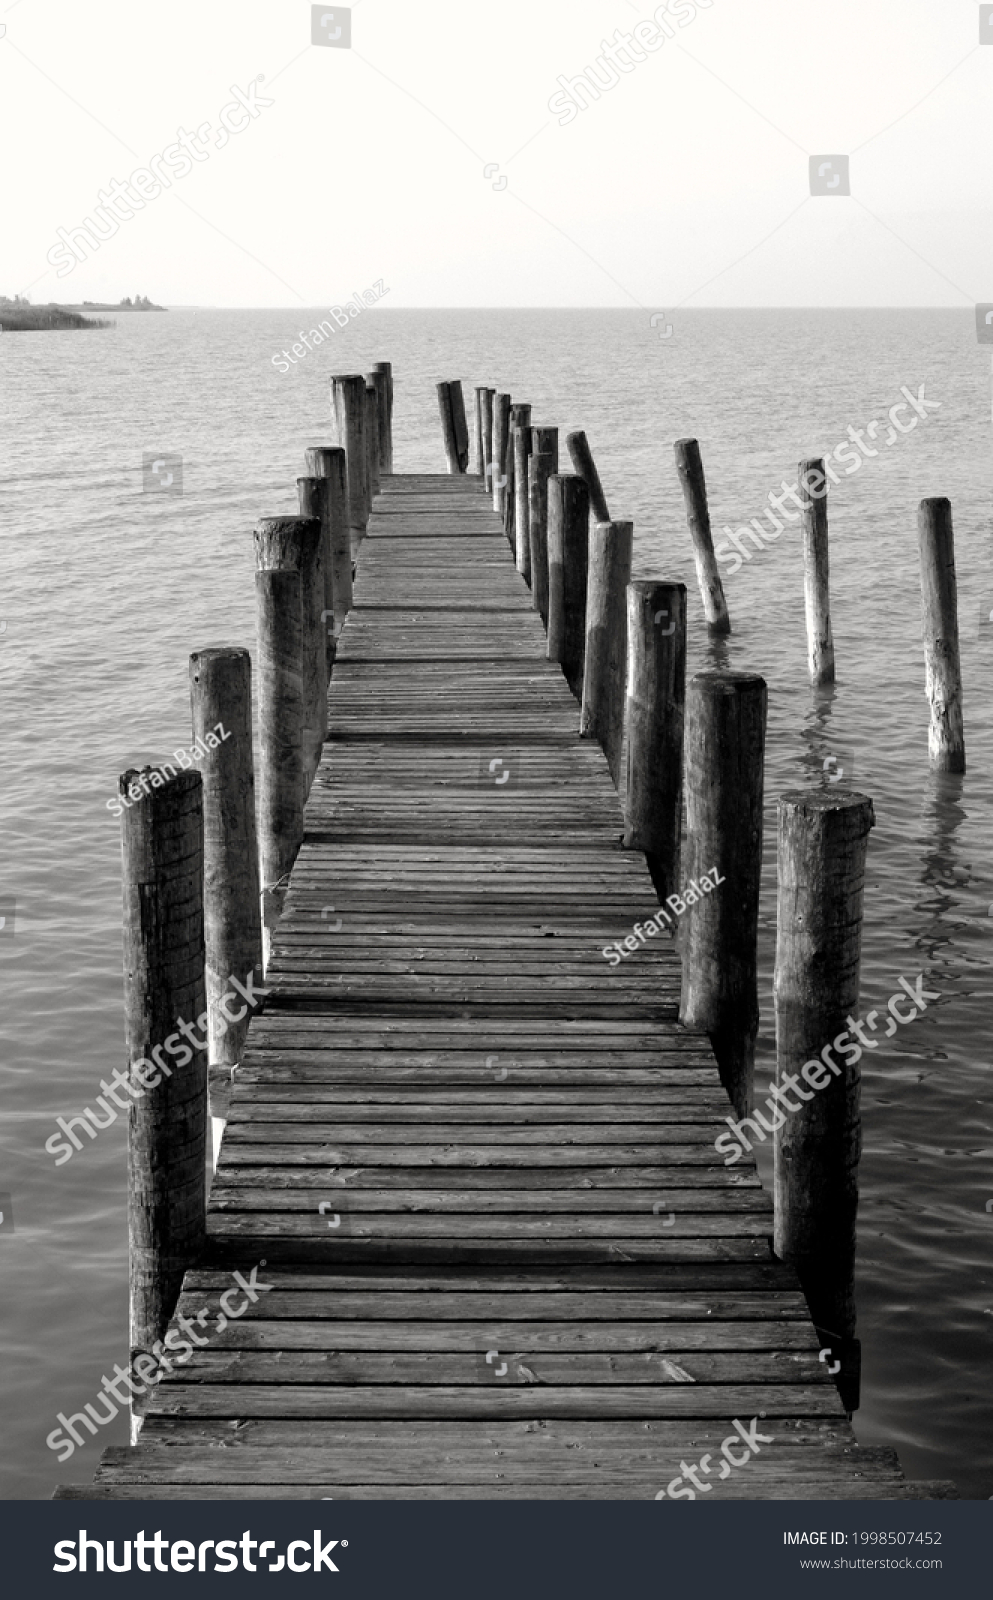 By the sea, beautiful view of a wooden pier, black and white photography. Wooden pier leading to the sea ocean or lake,boardwalk. Neusiedler See, Burgenland, Austria. #1998507452